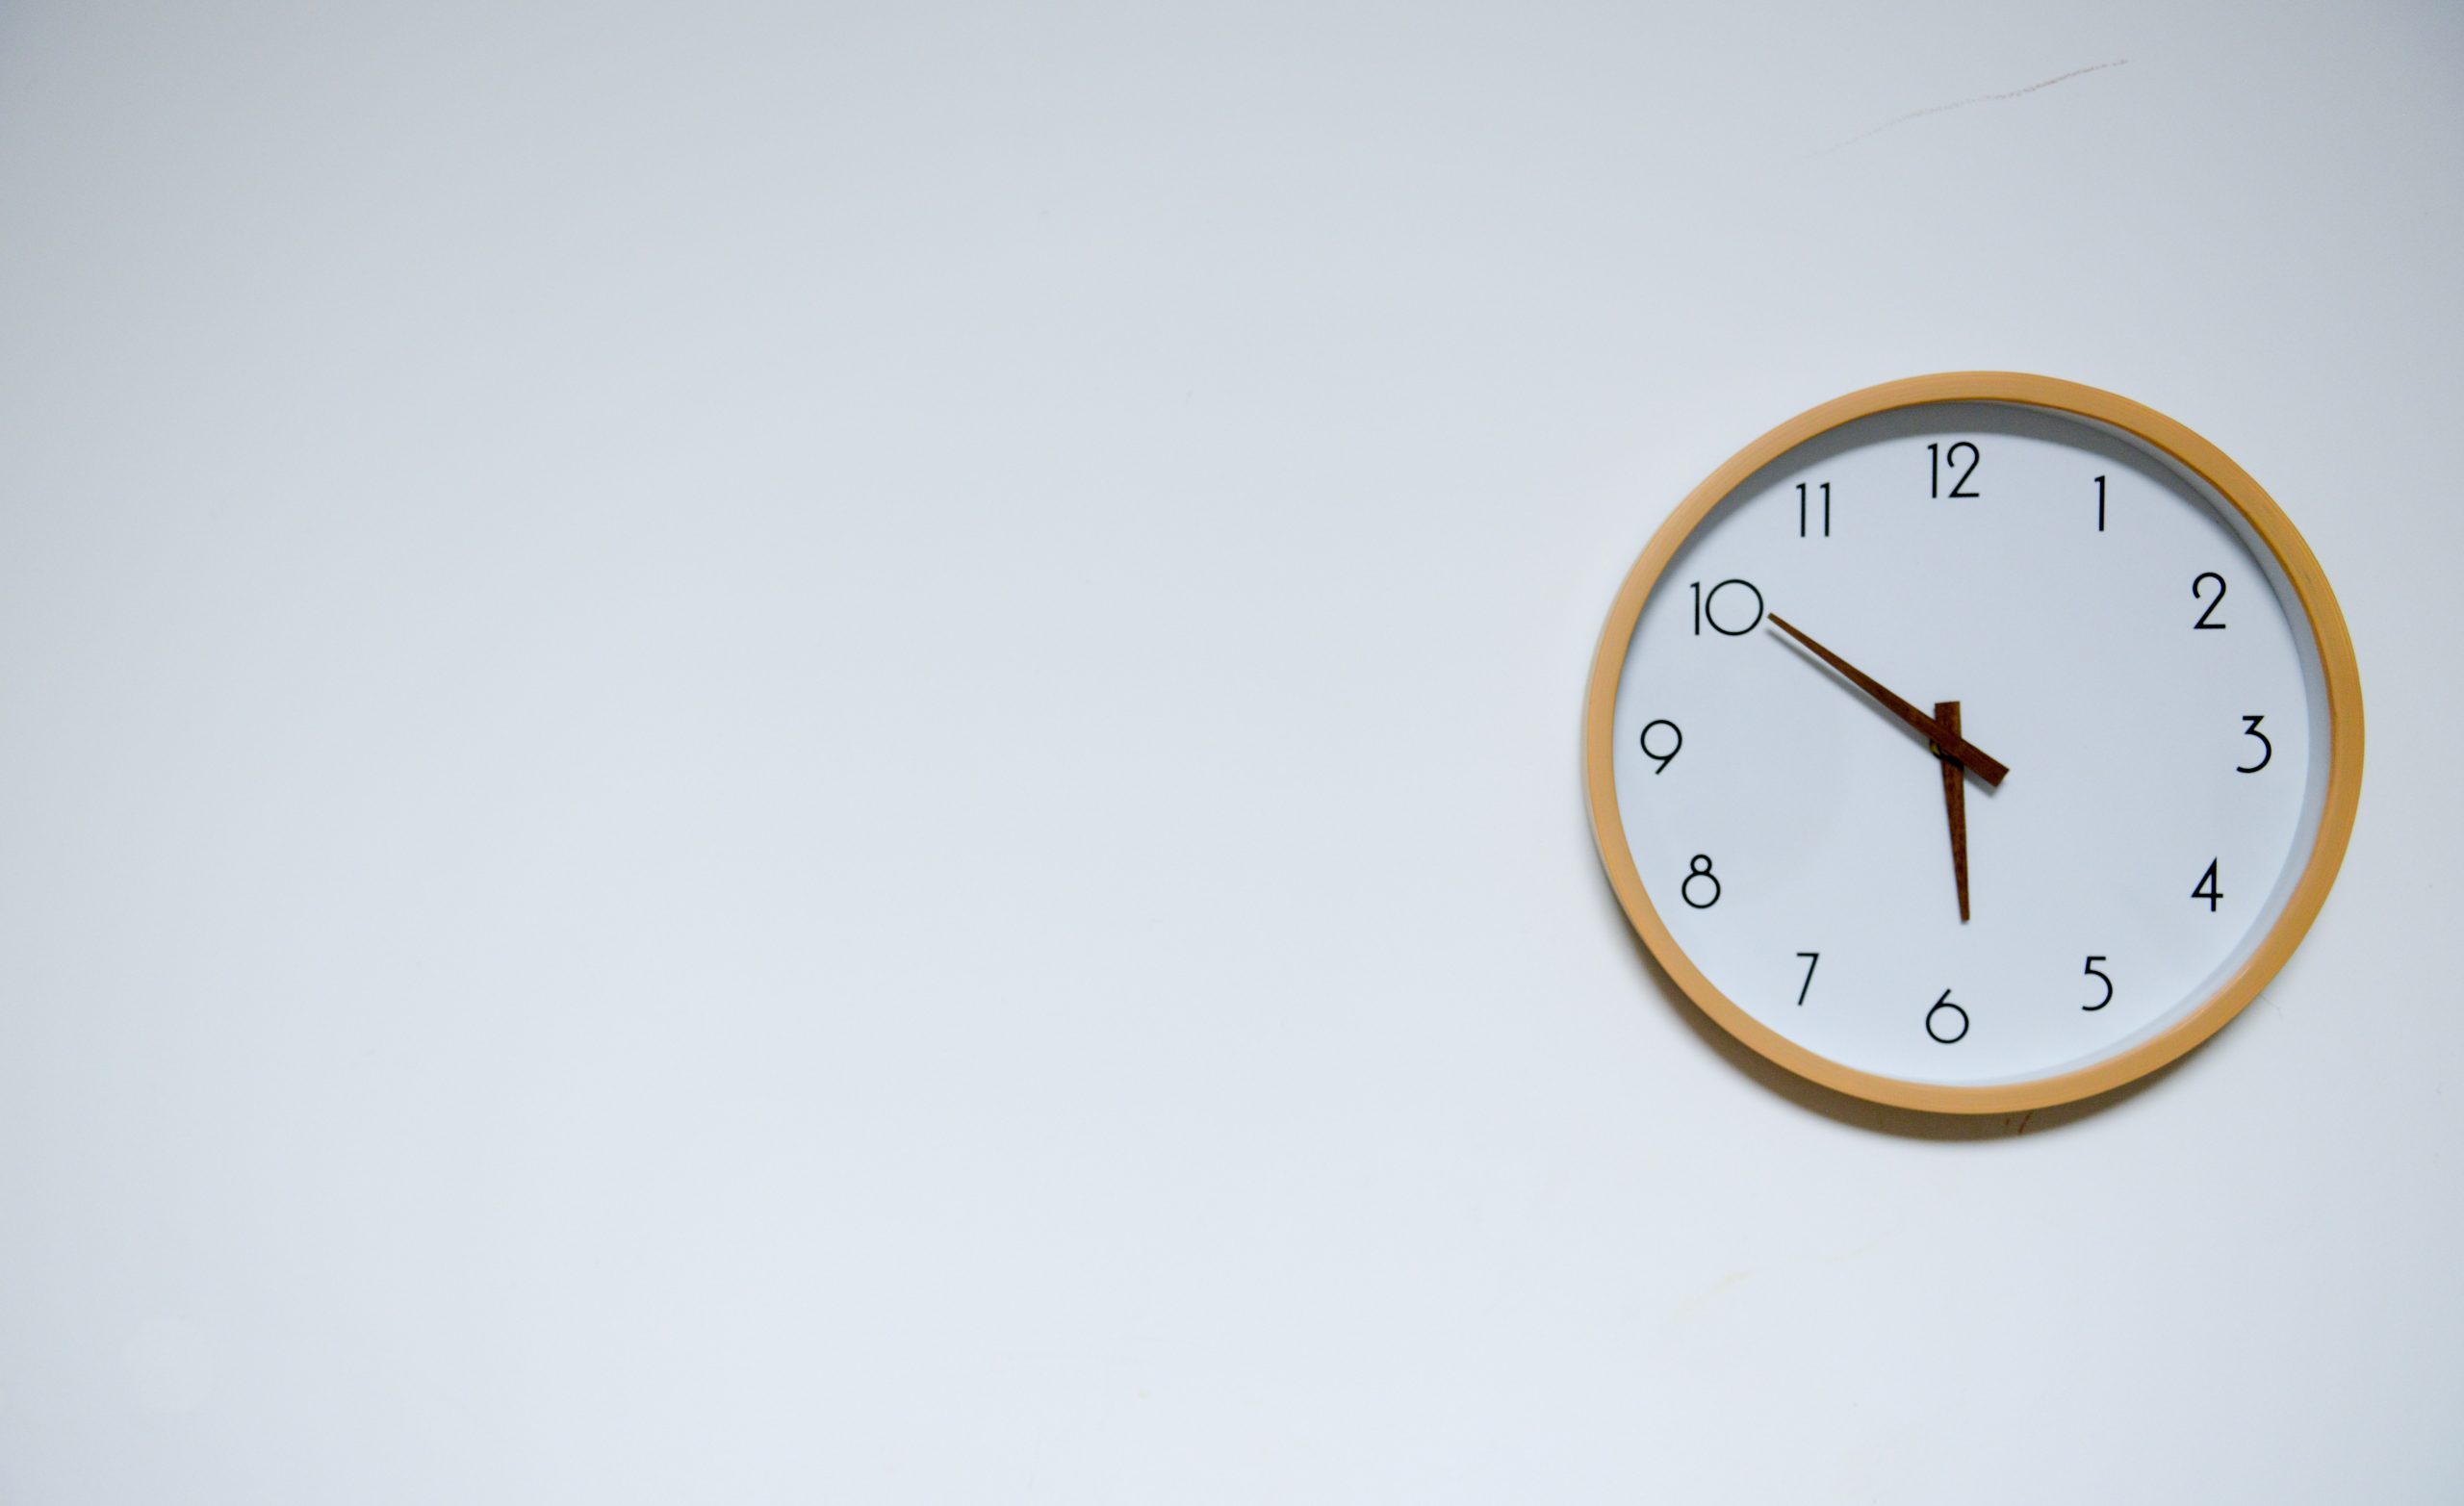 timing scheduling